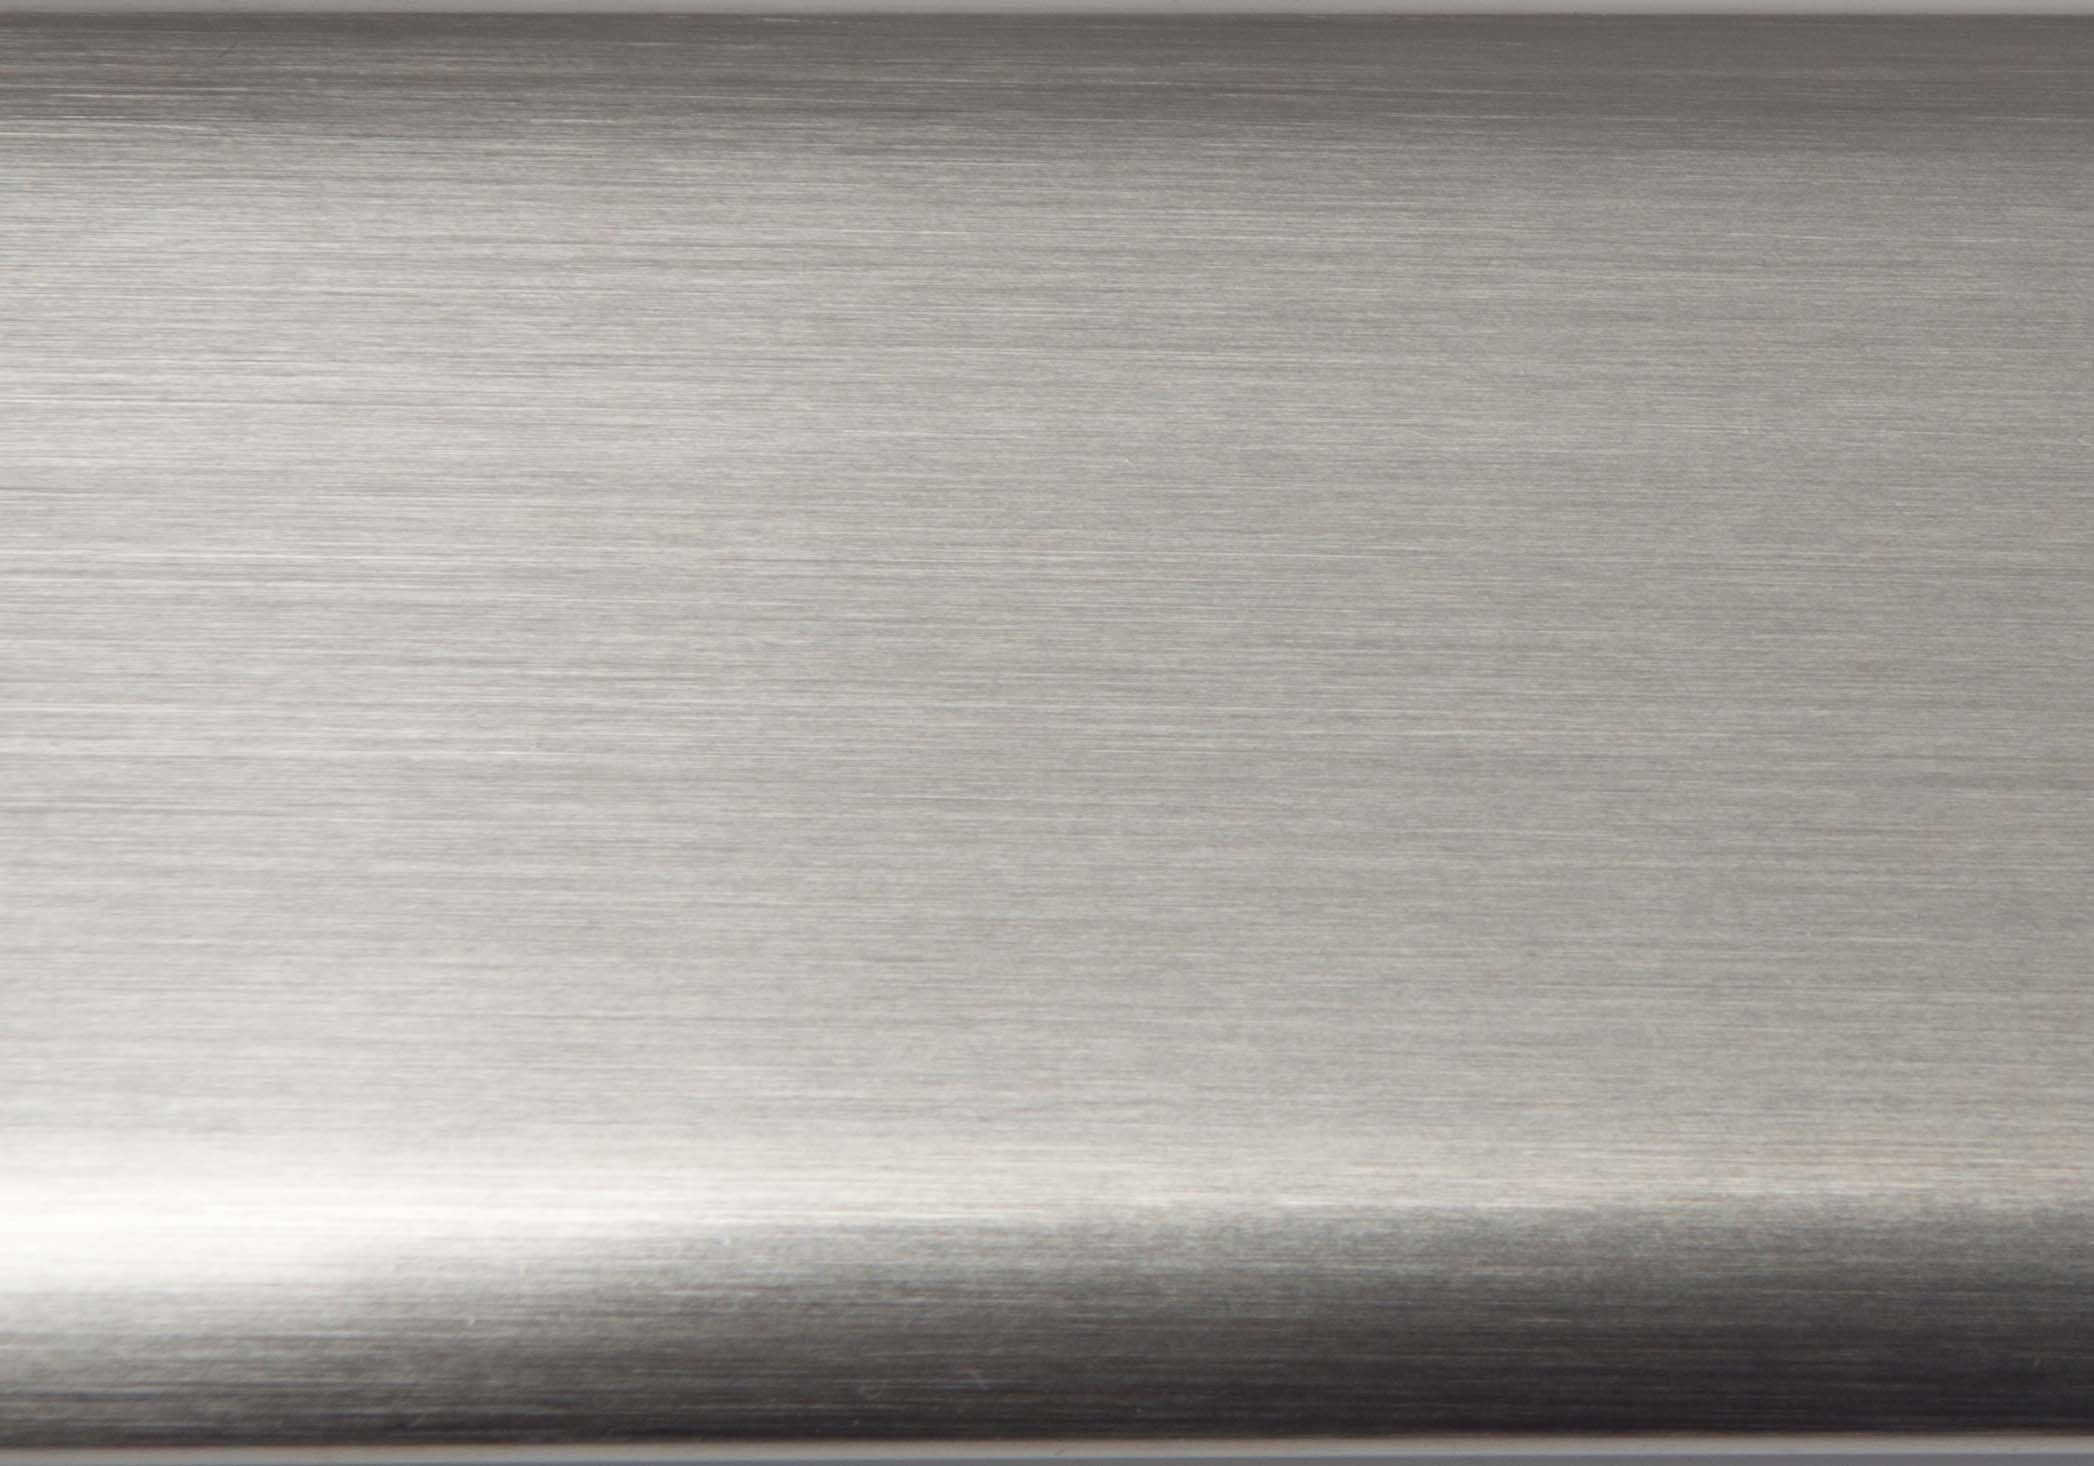 Satin Nickel door threshold